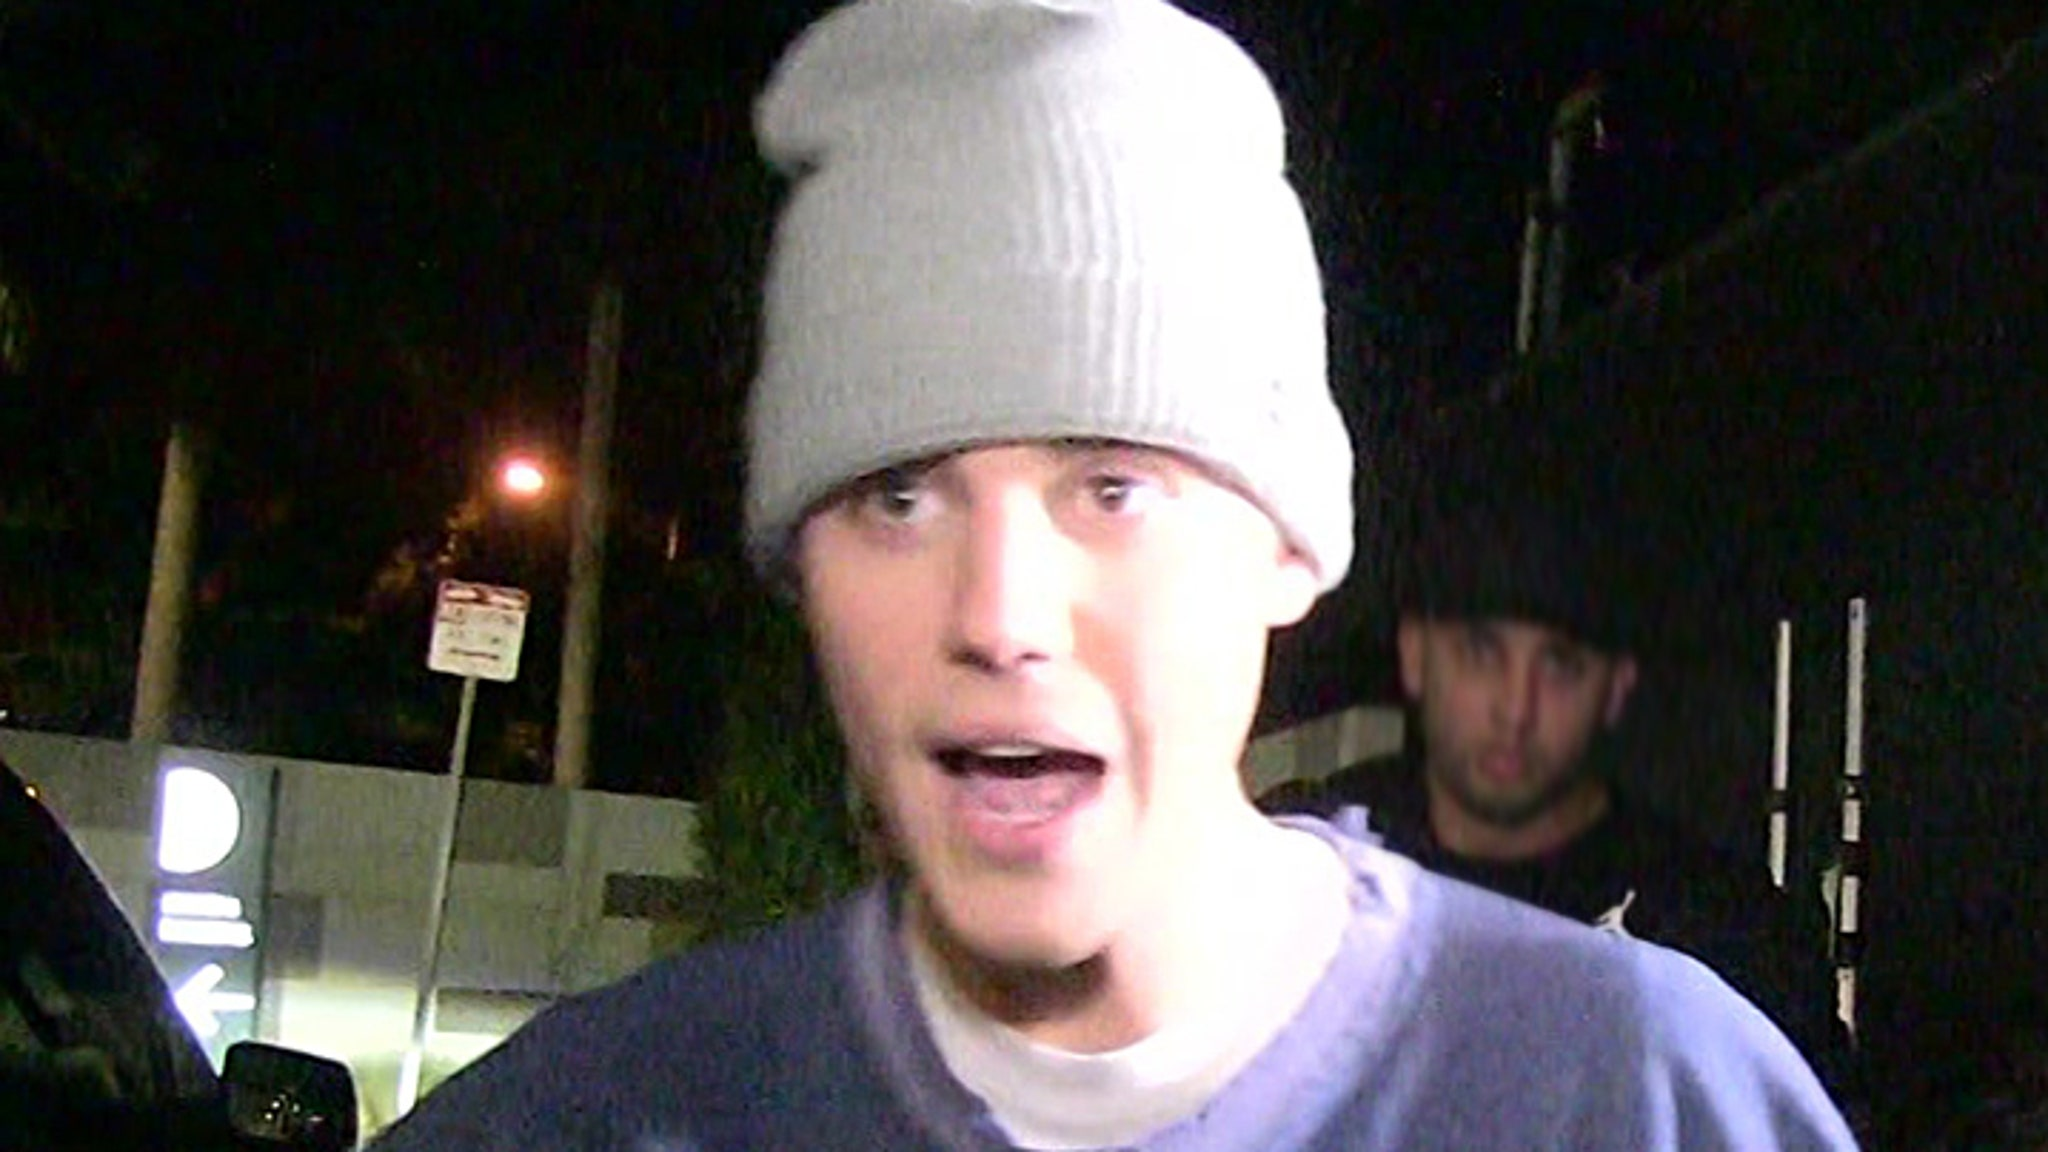 Appropriate Response To Justin Bieber DUI - Funny Video